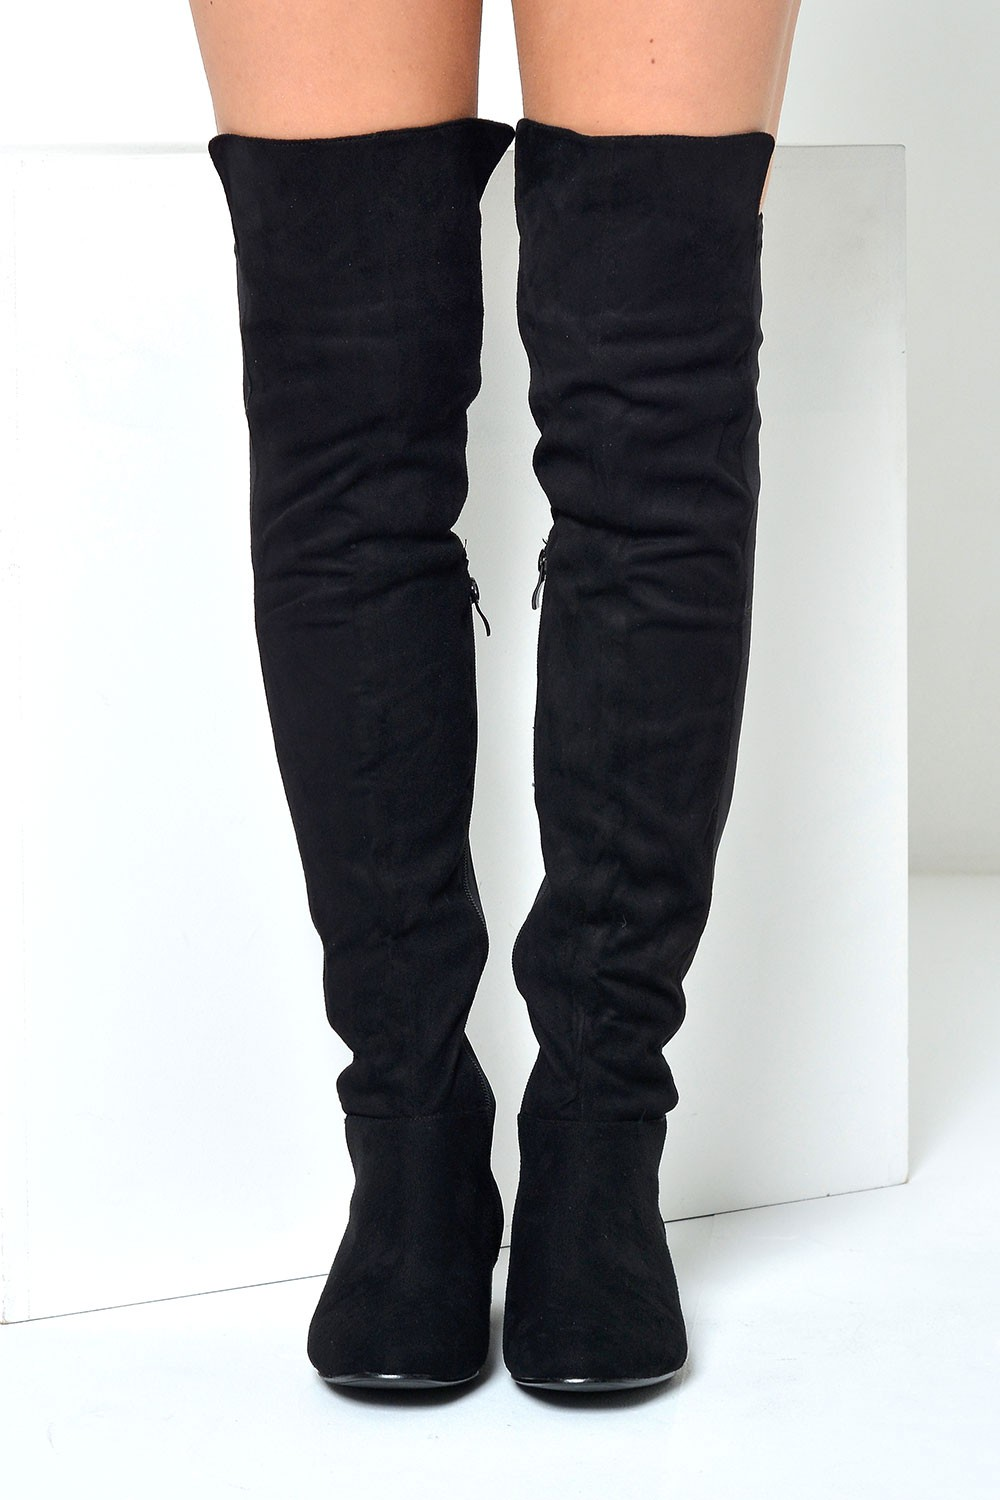 f455557e6567 No Doubt Flic 50 50 Over Knee Boots in Black Suede